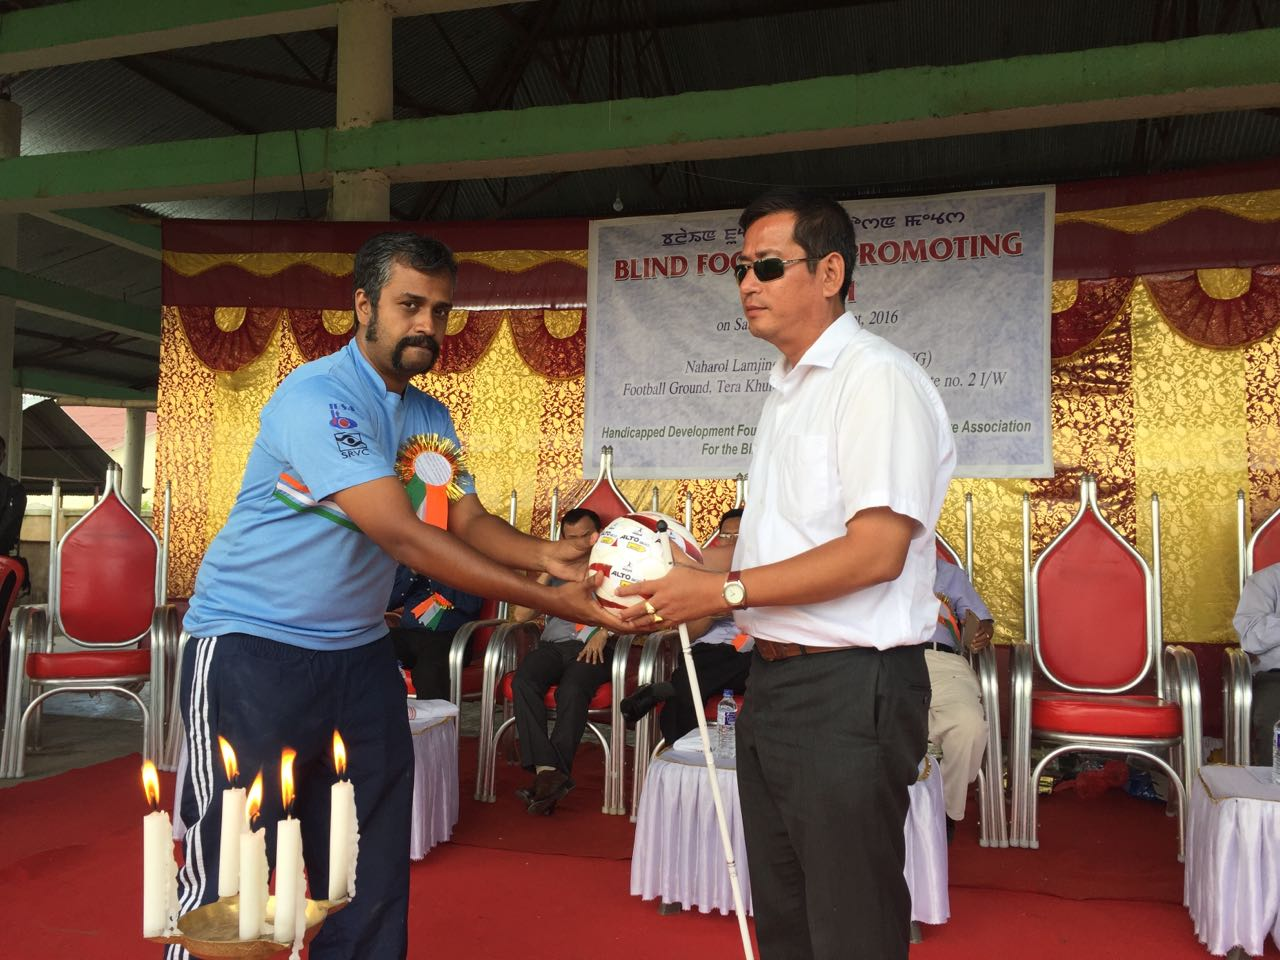 photos from blindfootball promotion camp at Imphal, Manipur